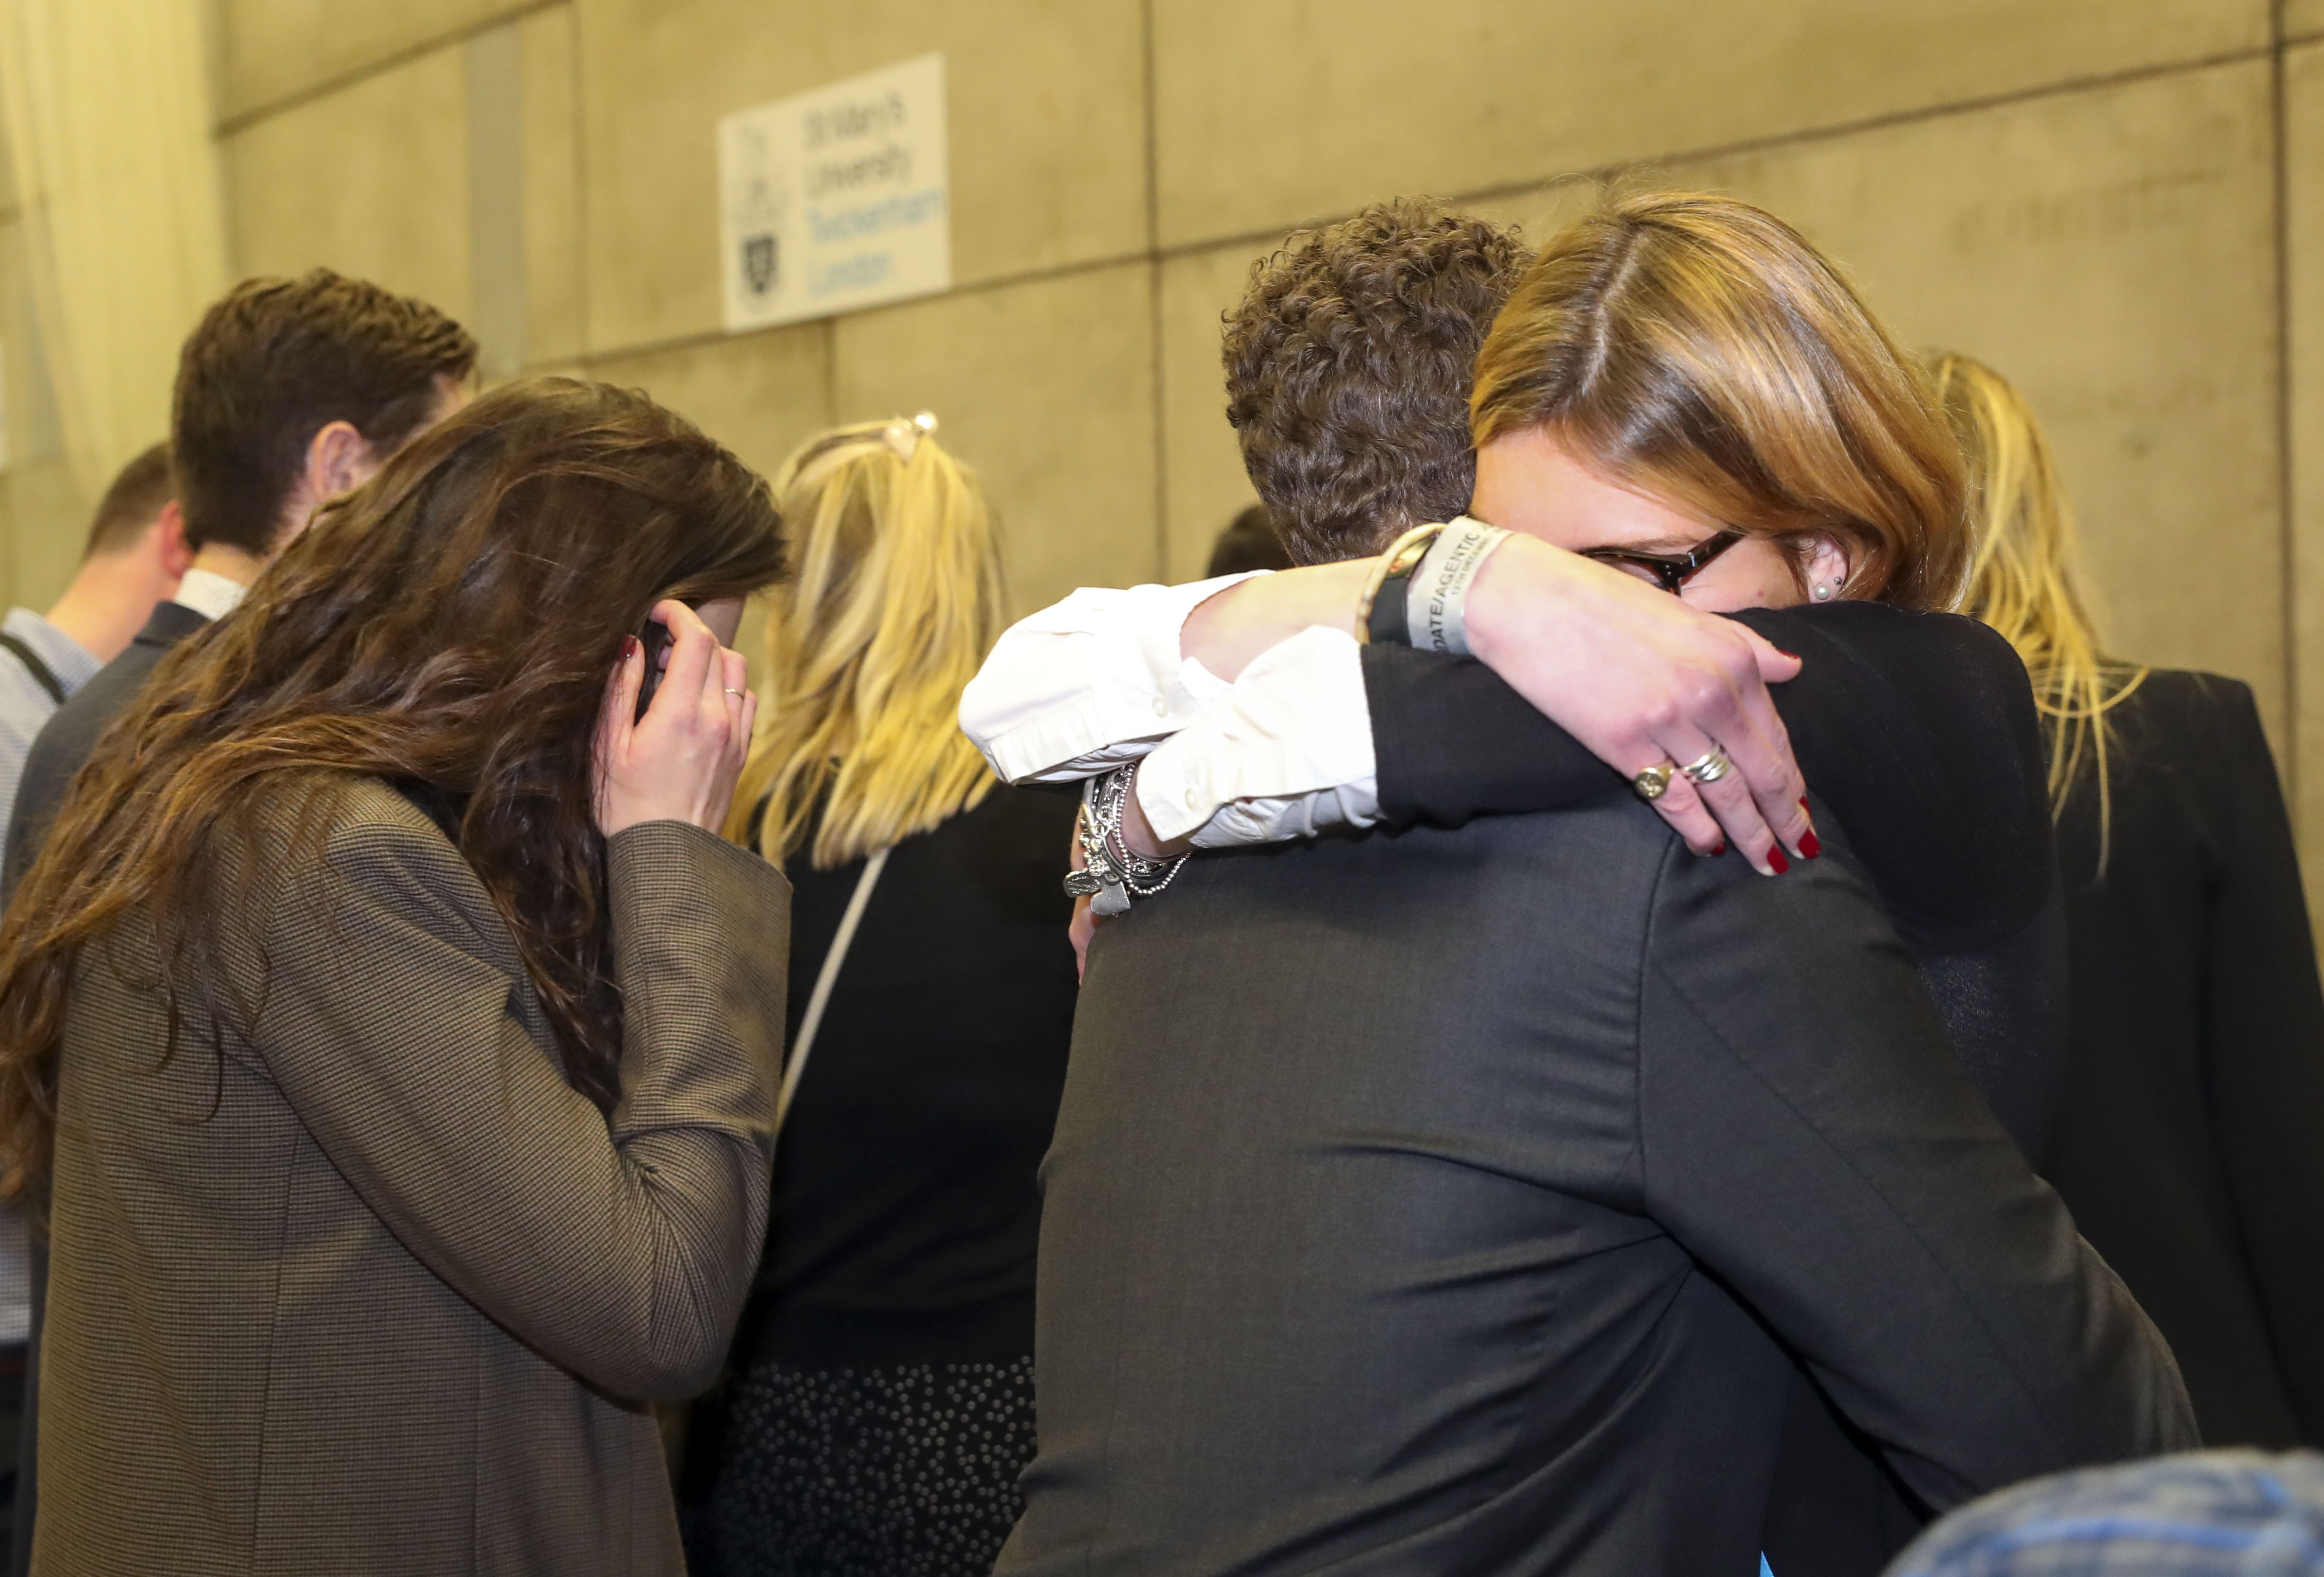 Supporters of Conservative candidate Zac Goldsmith hug after hearing at St Mary's University, in Strawberry Hill, Twickenham, that he had lost his Richmond Park seat in the 2019 General Election. (Photo by Steve Parsons/PA Images via Getty Images)